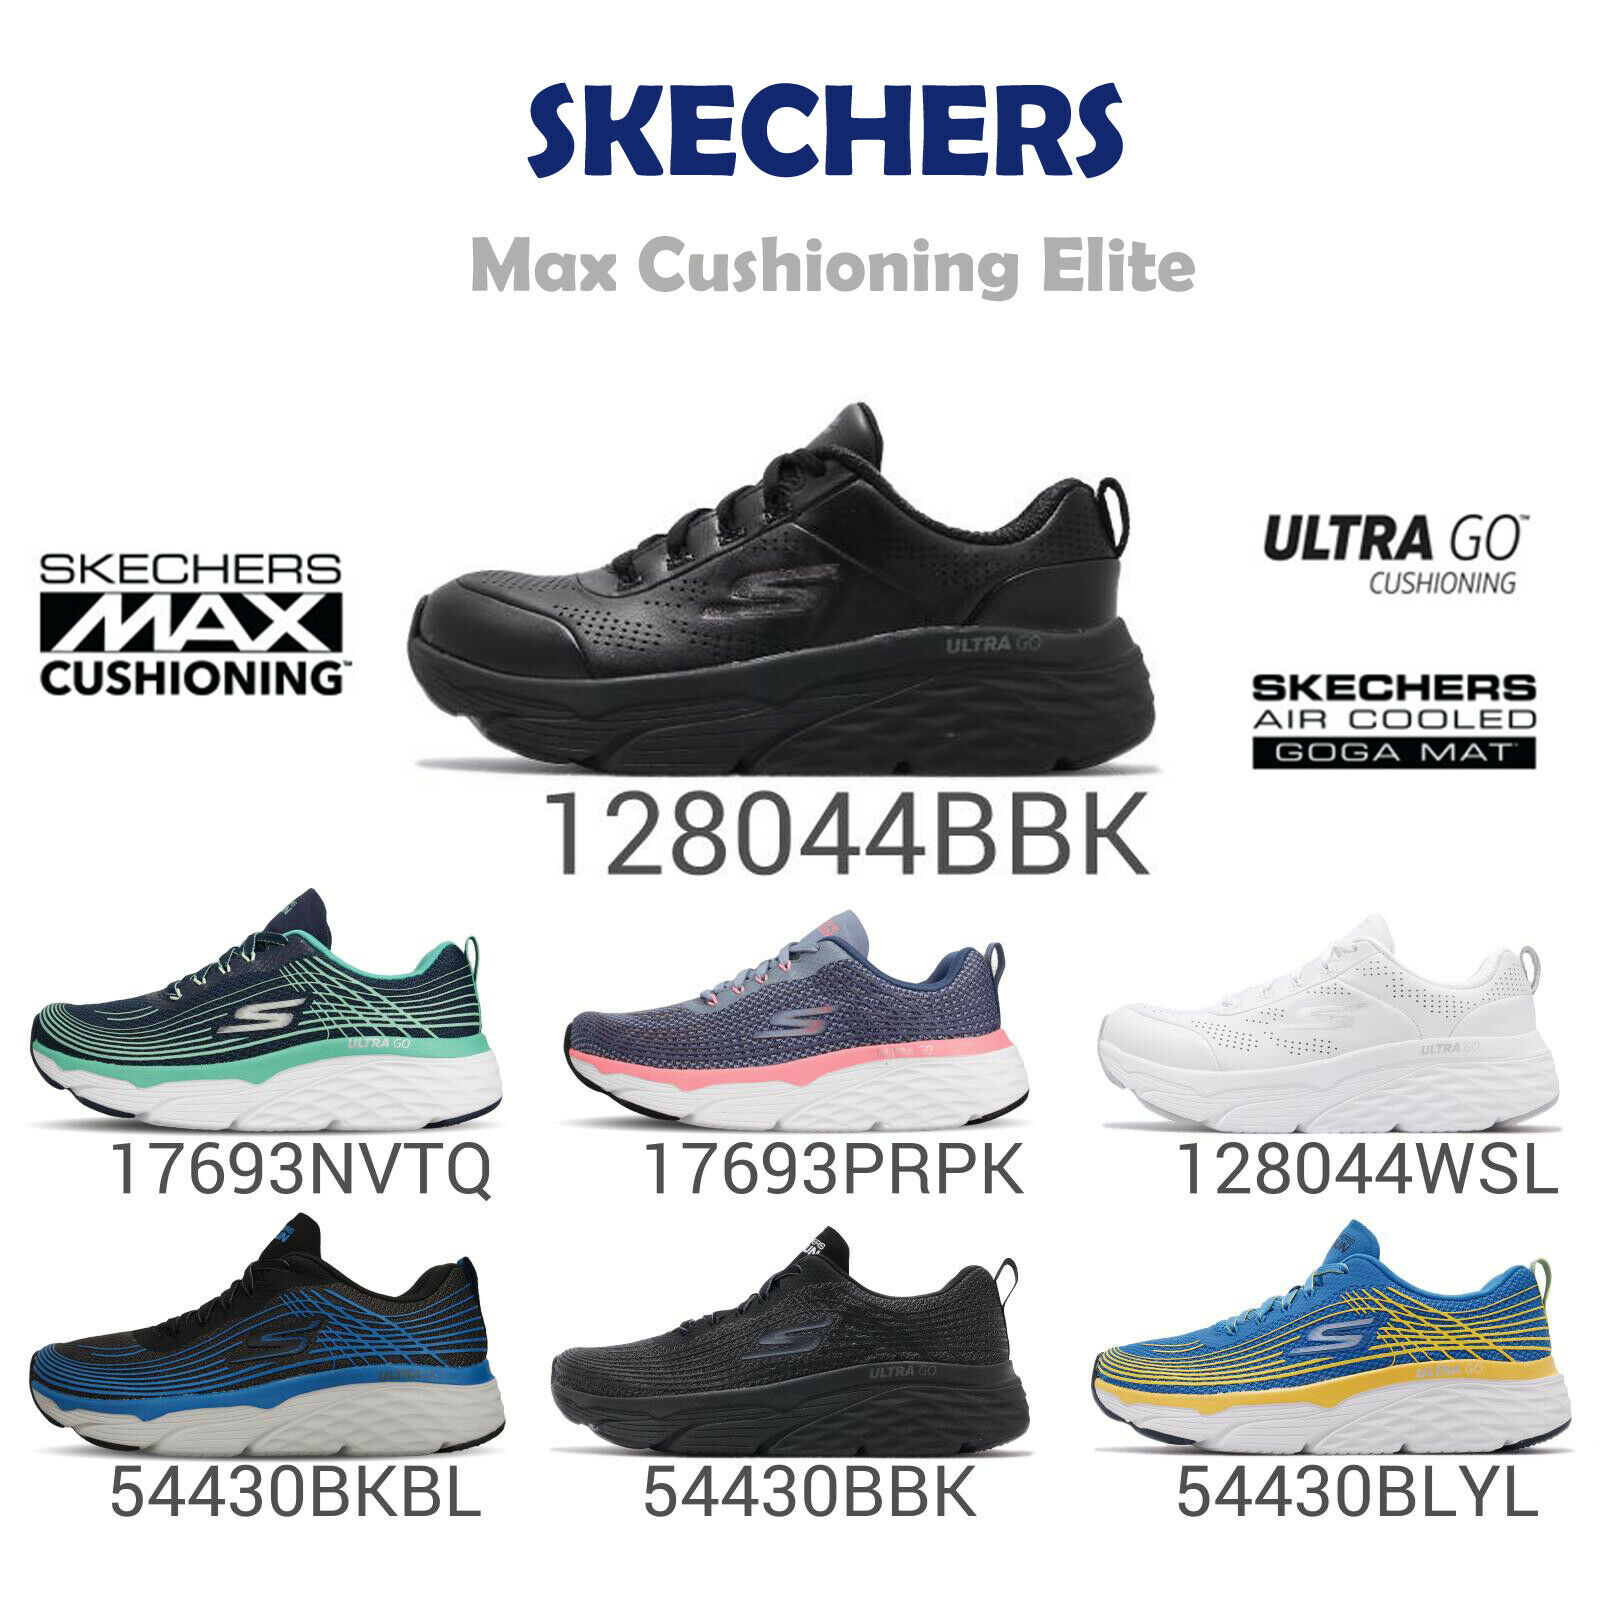 Skechers Max Cushioning Elite Step Up ULTRA GO Men Women Running Shoes Pick 1